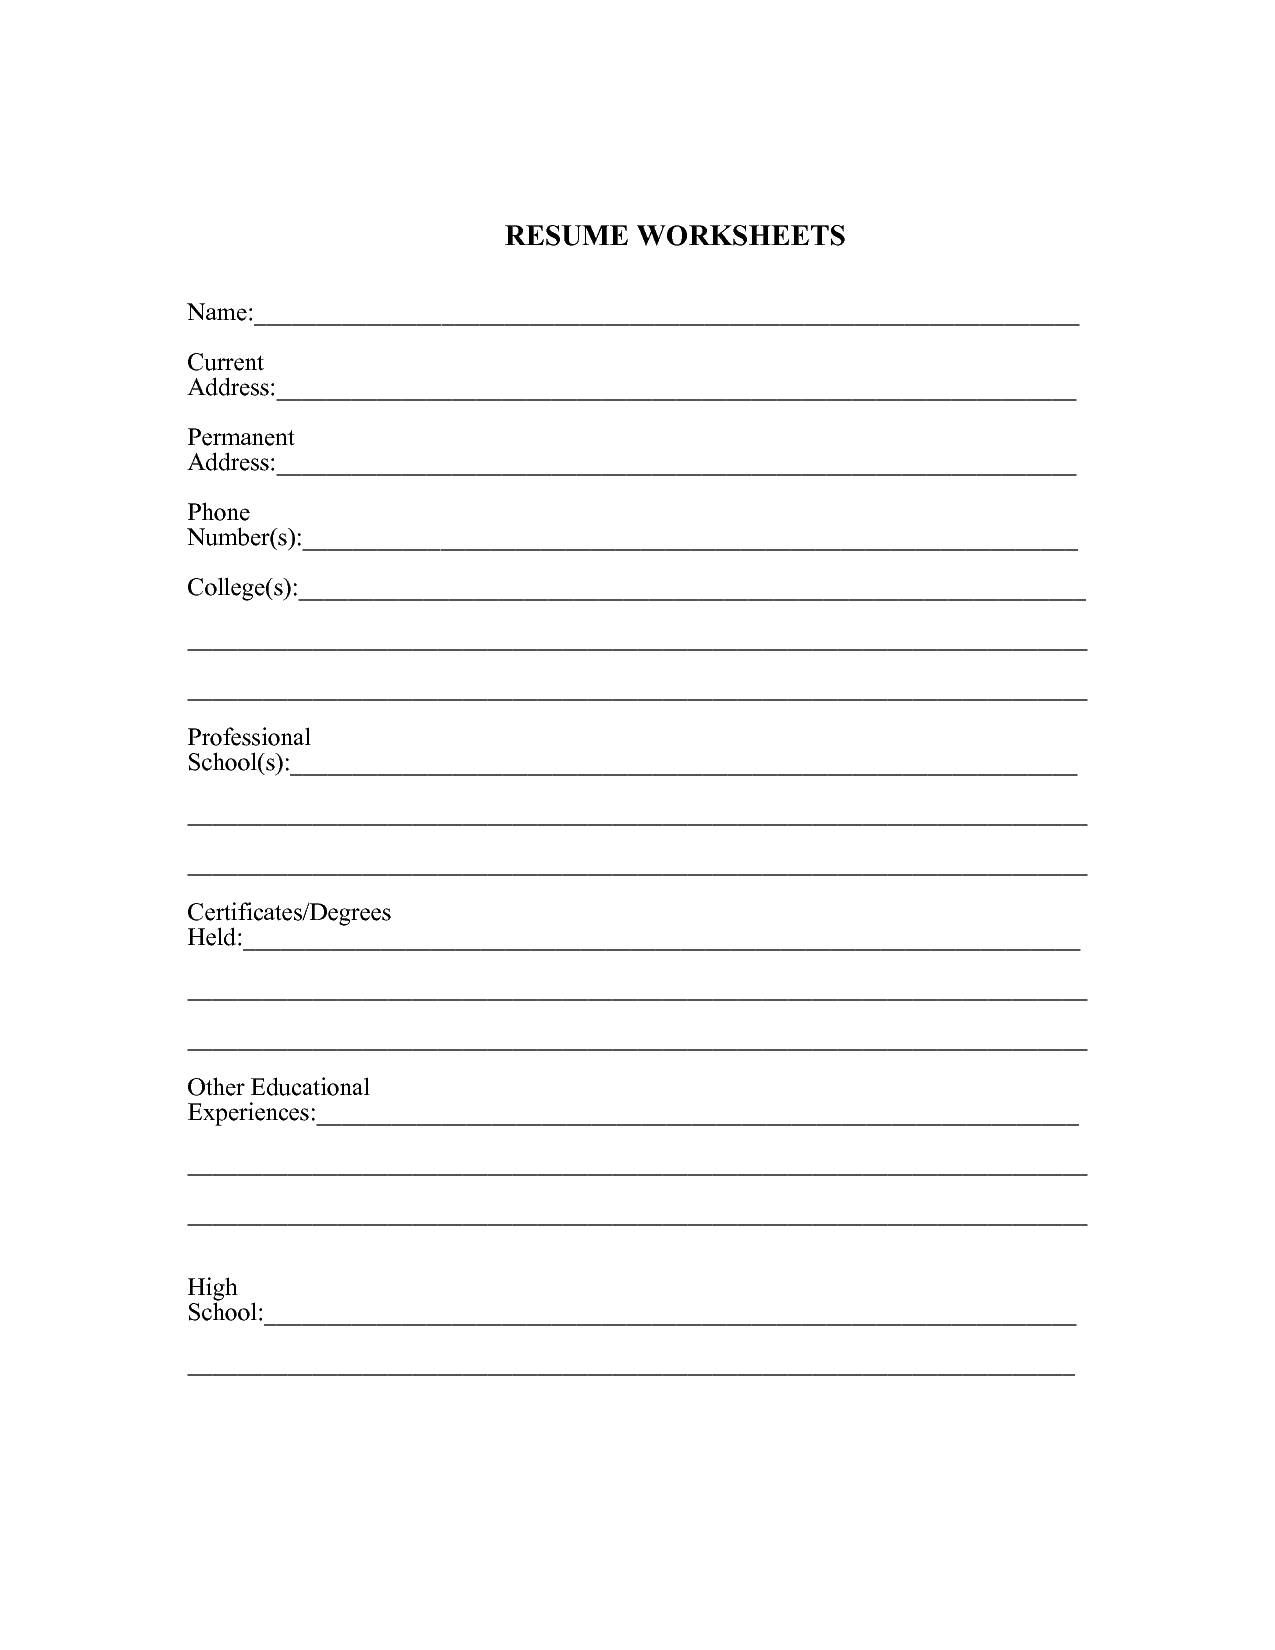 Resume Worksheet For High School Students  Jwritings Within Resume Worksheet For High School Students